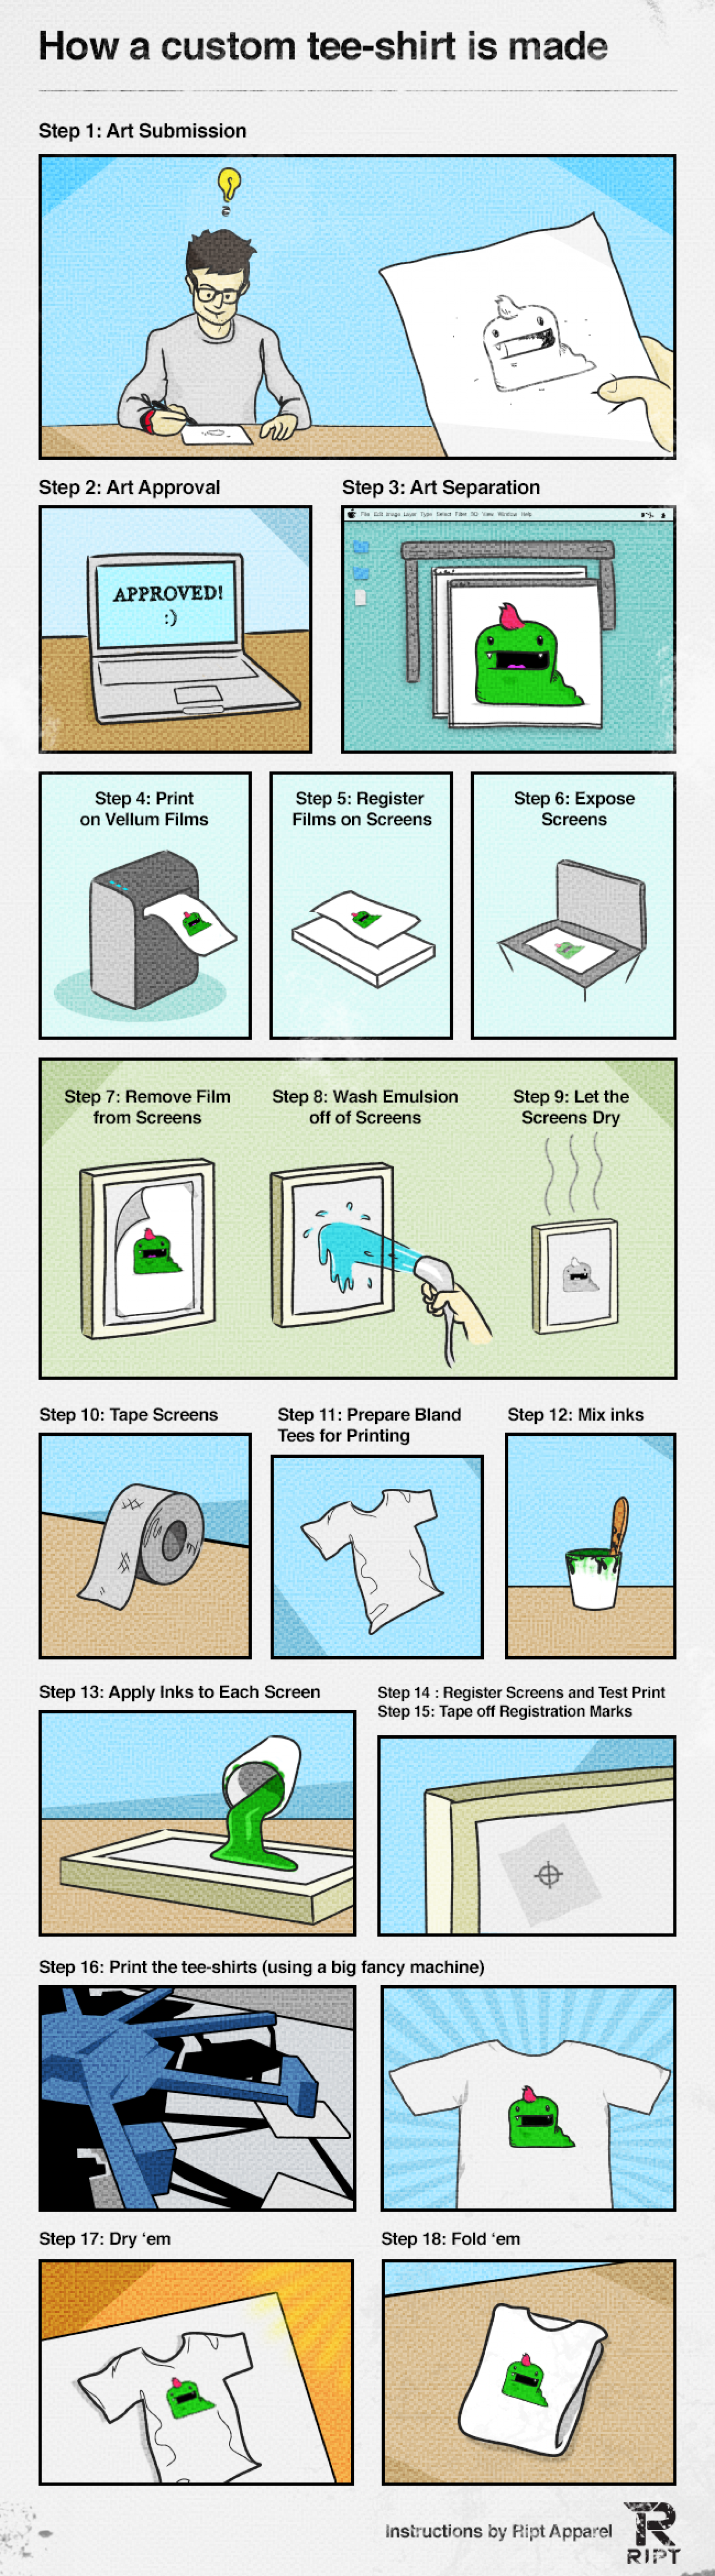 How a Custom T-Shirt Is Made Infographic